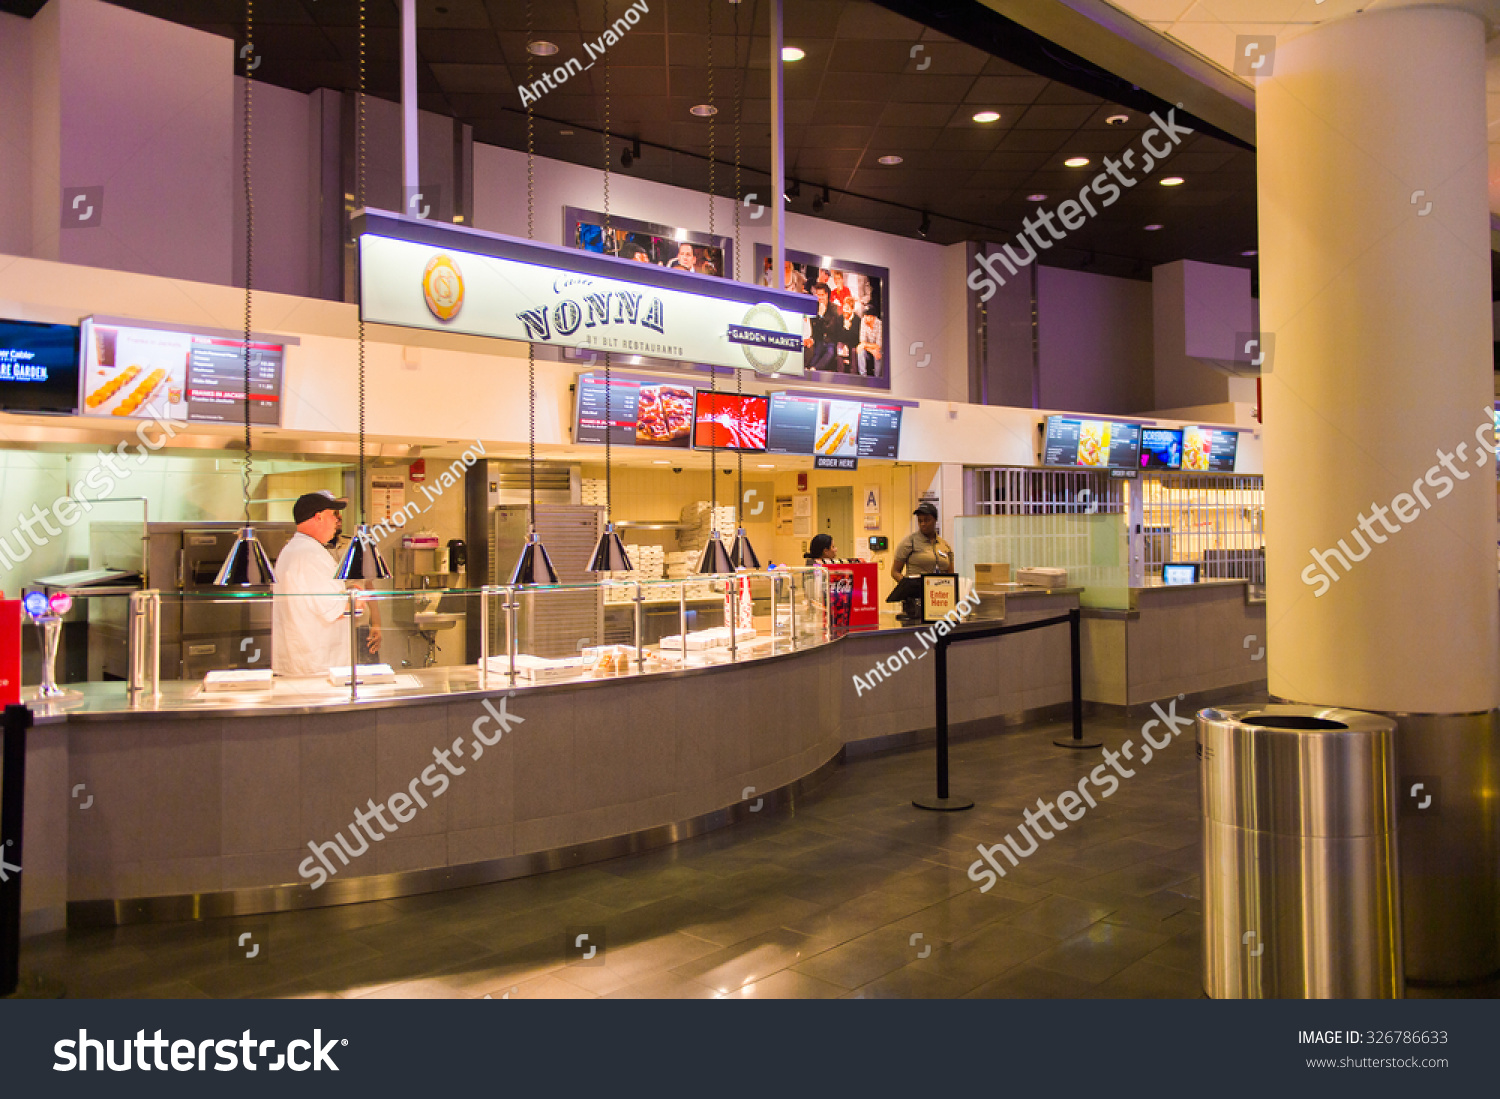 NEW YORK, USA - OCT 8, 2015: Nonna at the Food court at the Madison ...